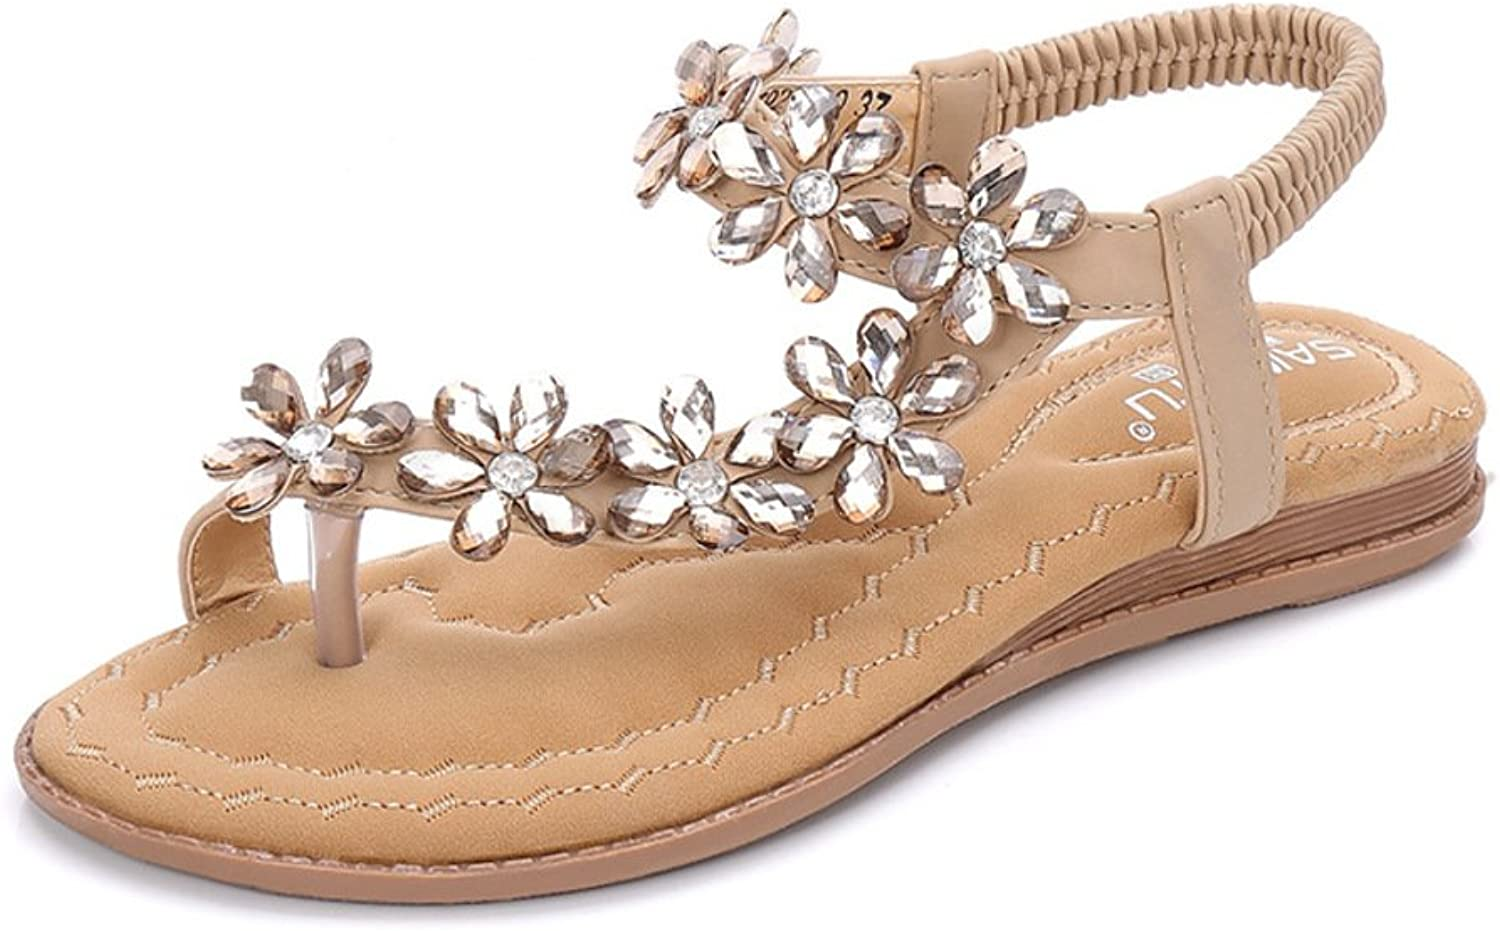 Weiwei Ladies Flat Sandals,Bohemian Girl Comfort Clip Toe Slippers